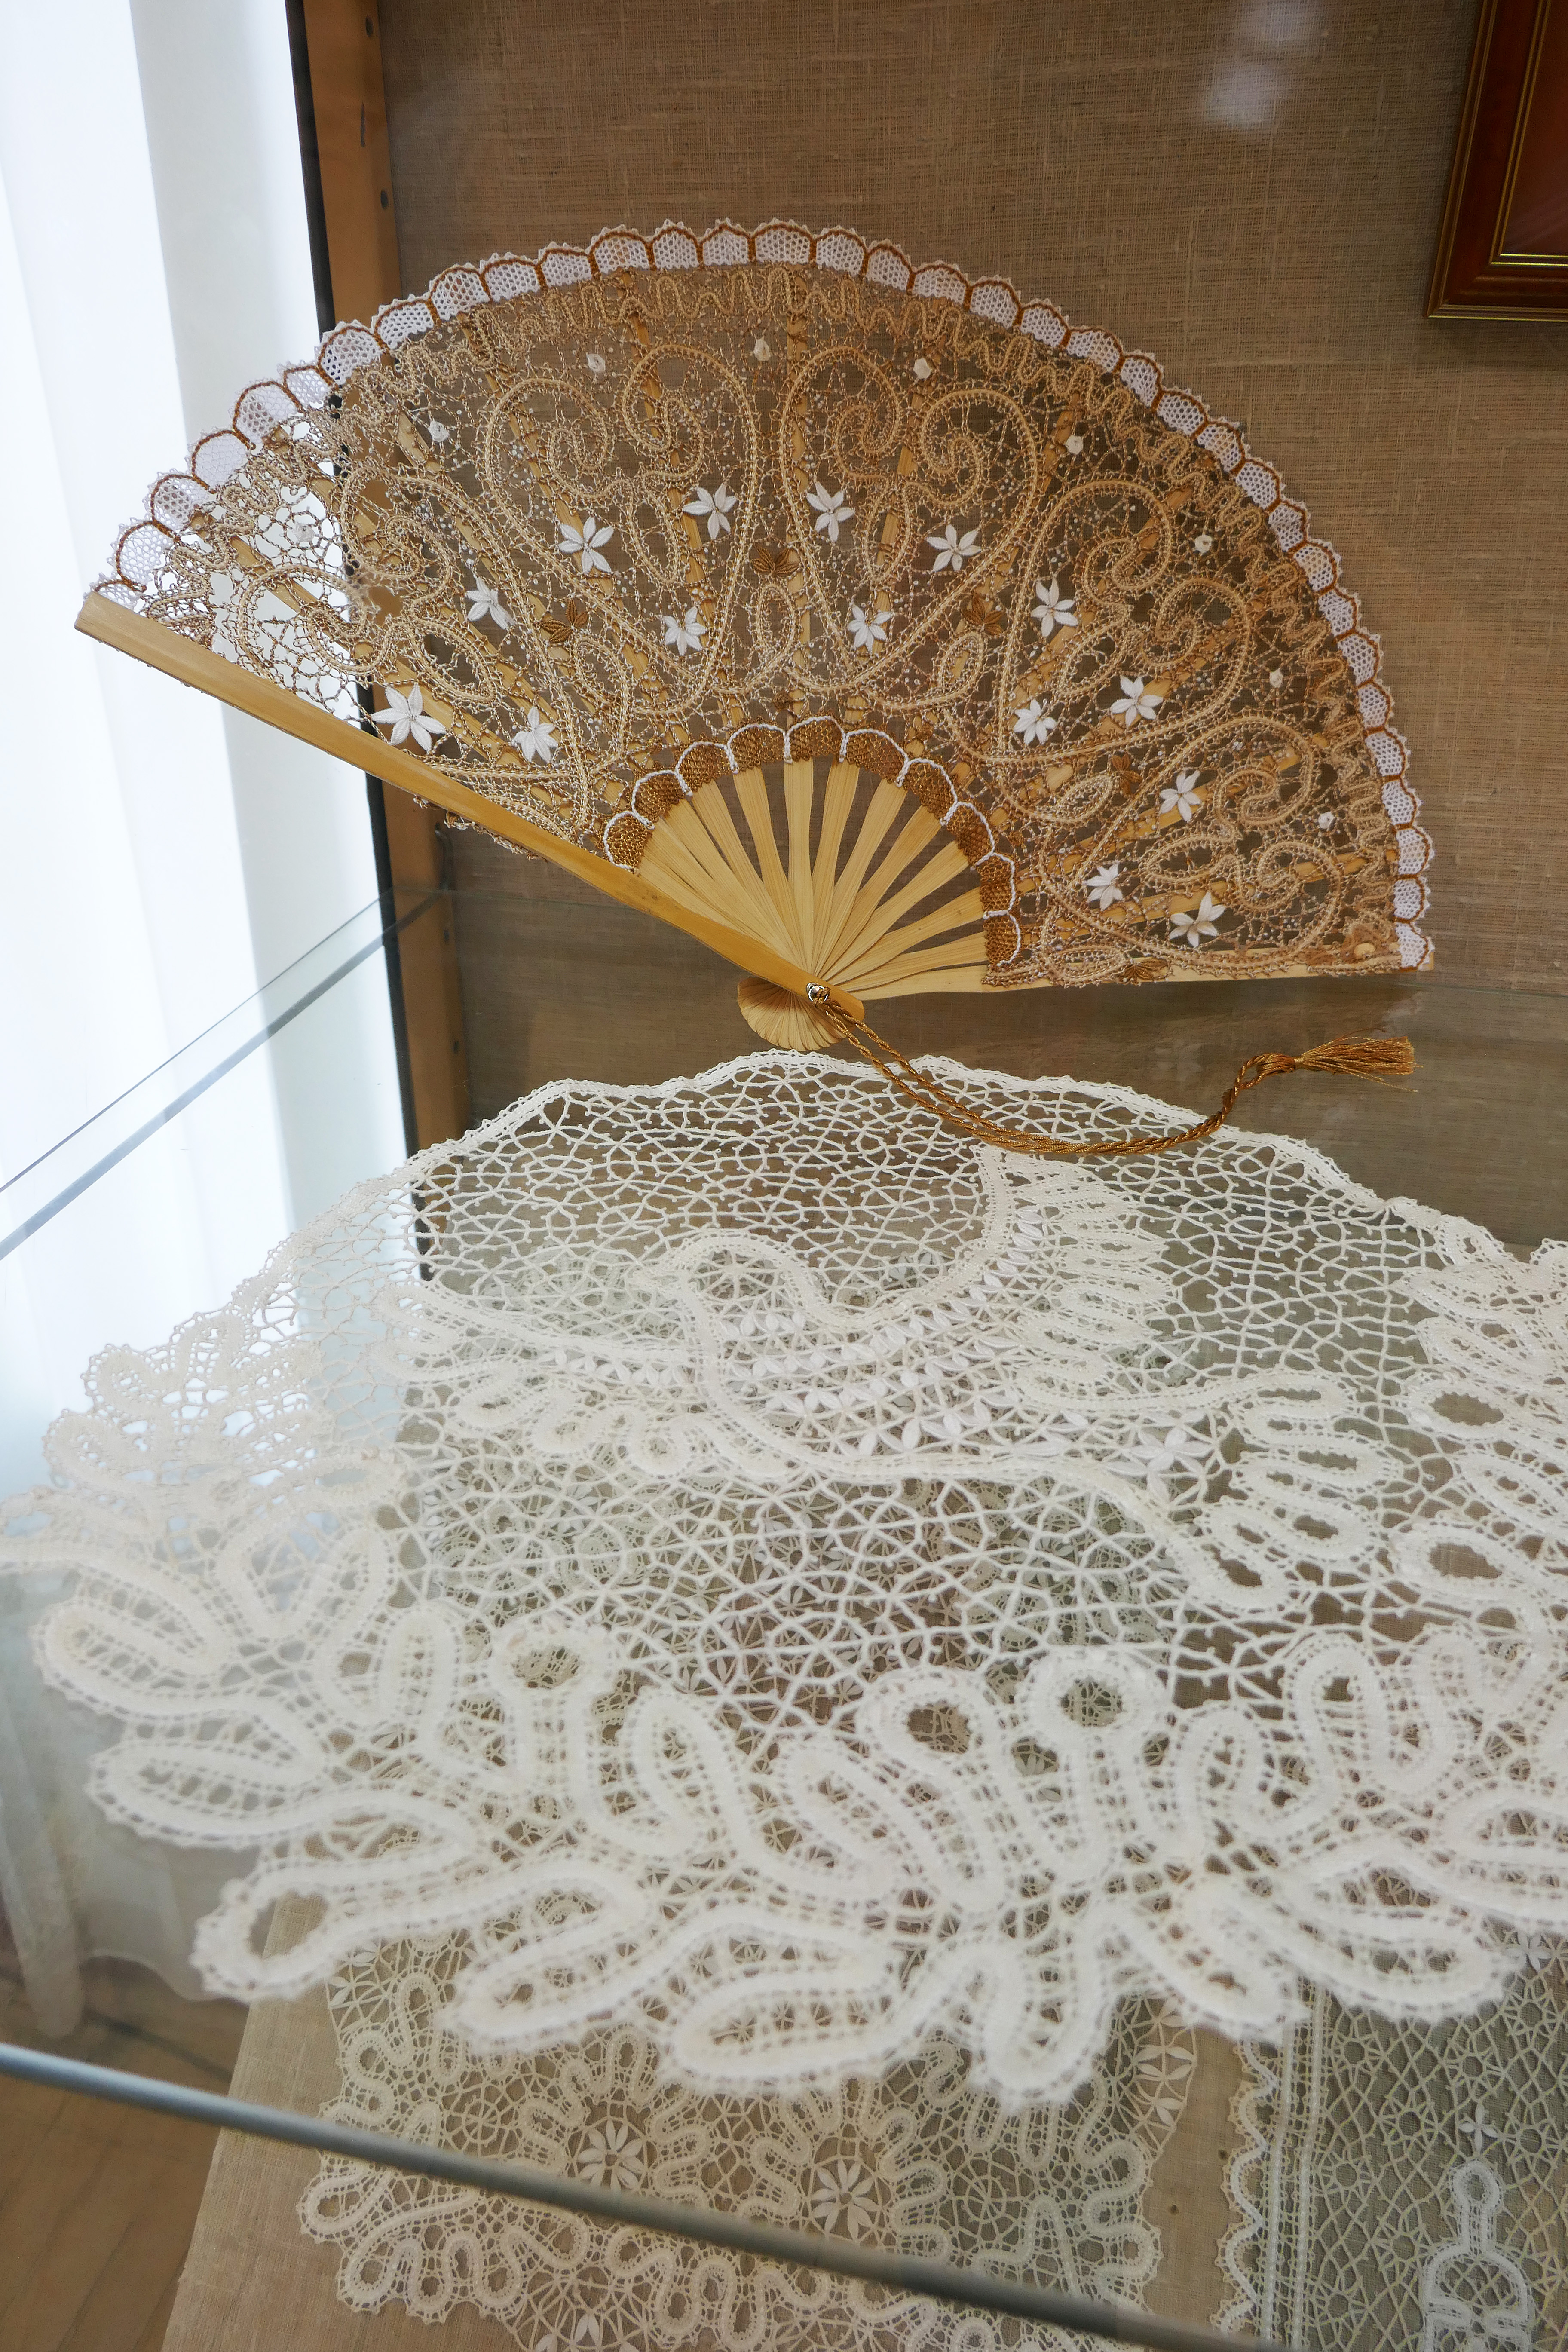 Valday Town Museum-Vologda lace